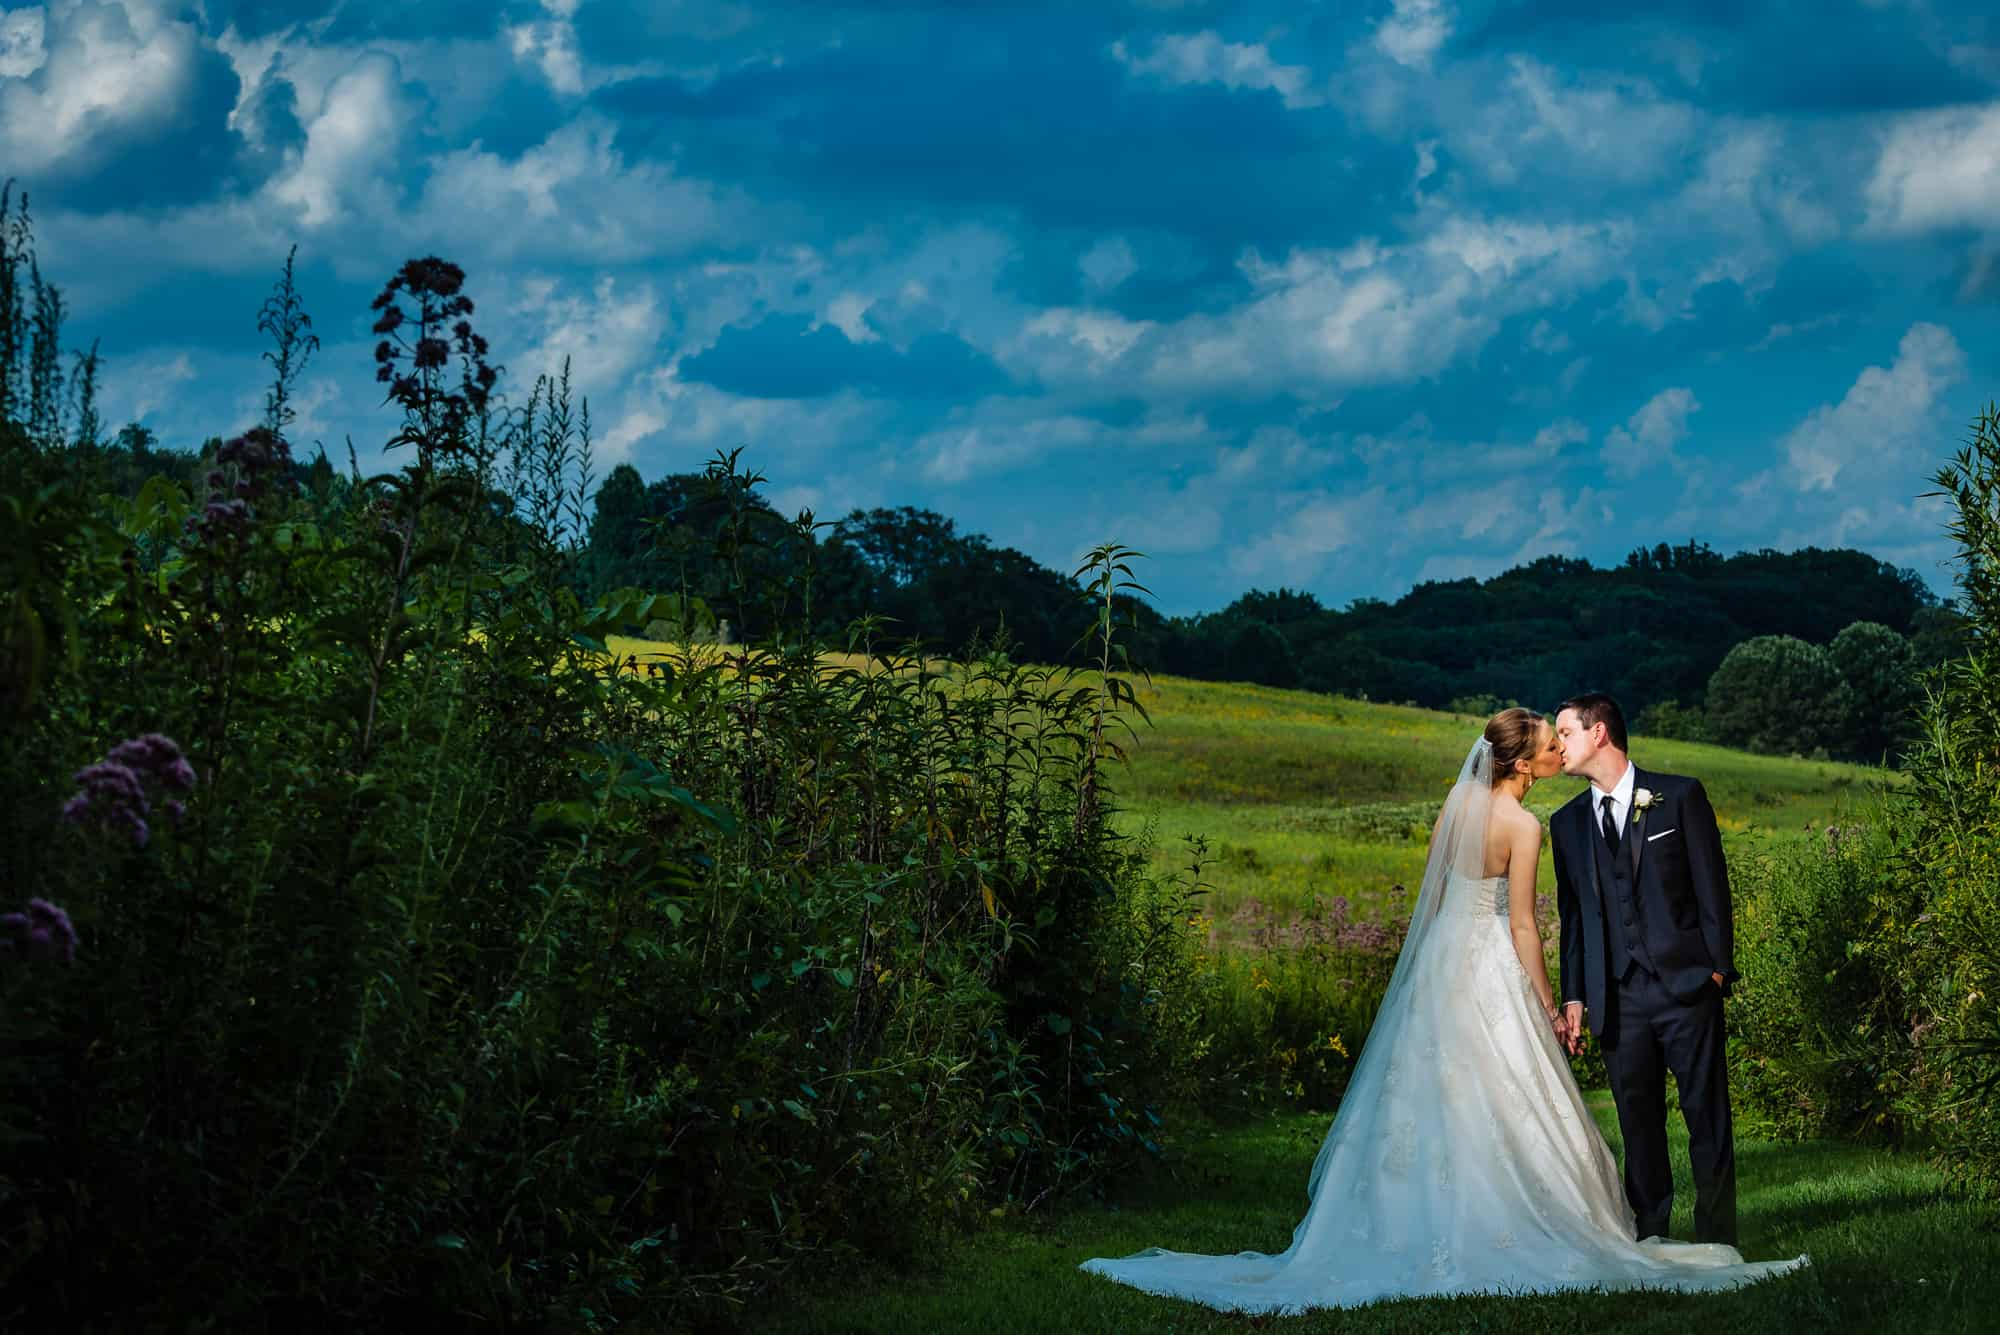 dramtic light on bride and groom in epic wedding photo